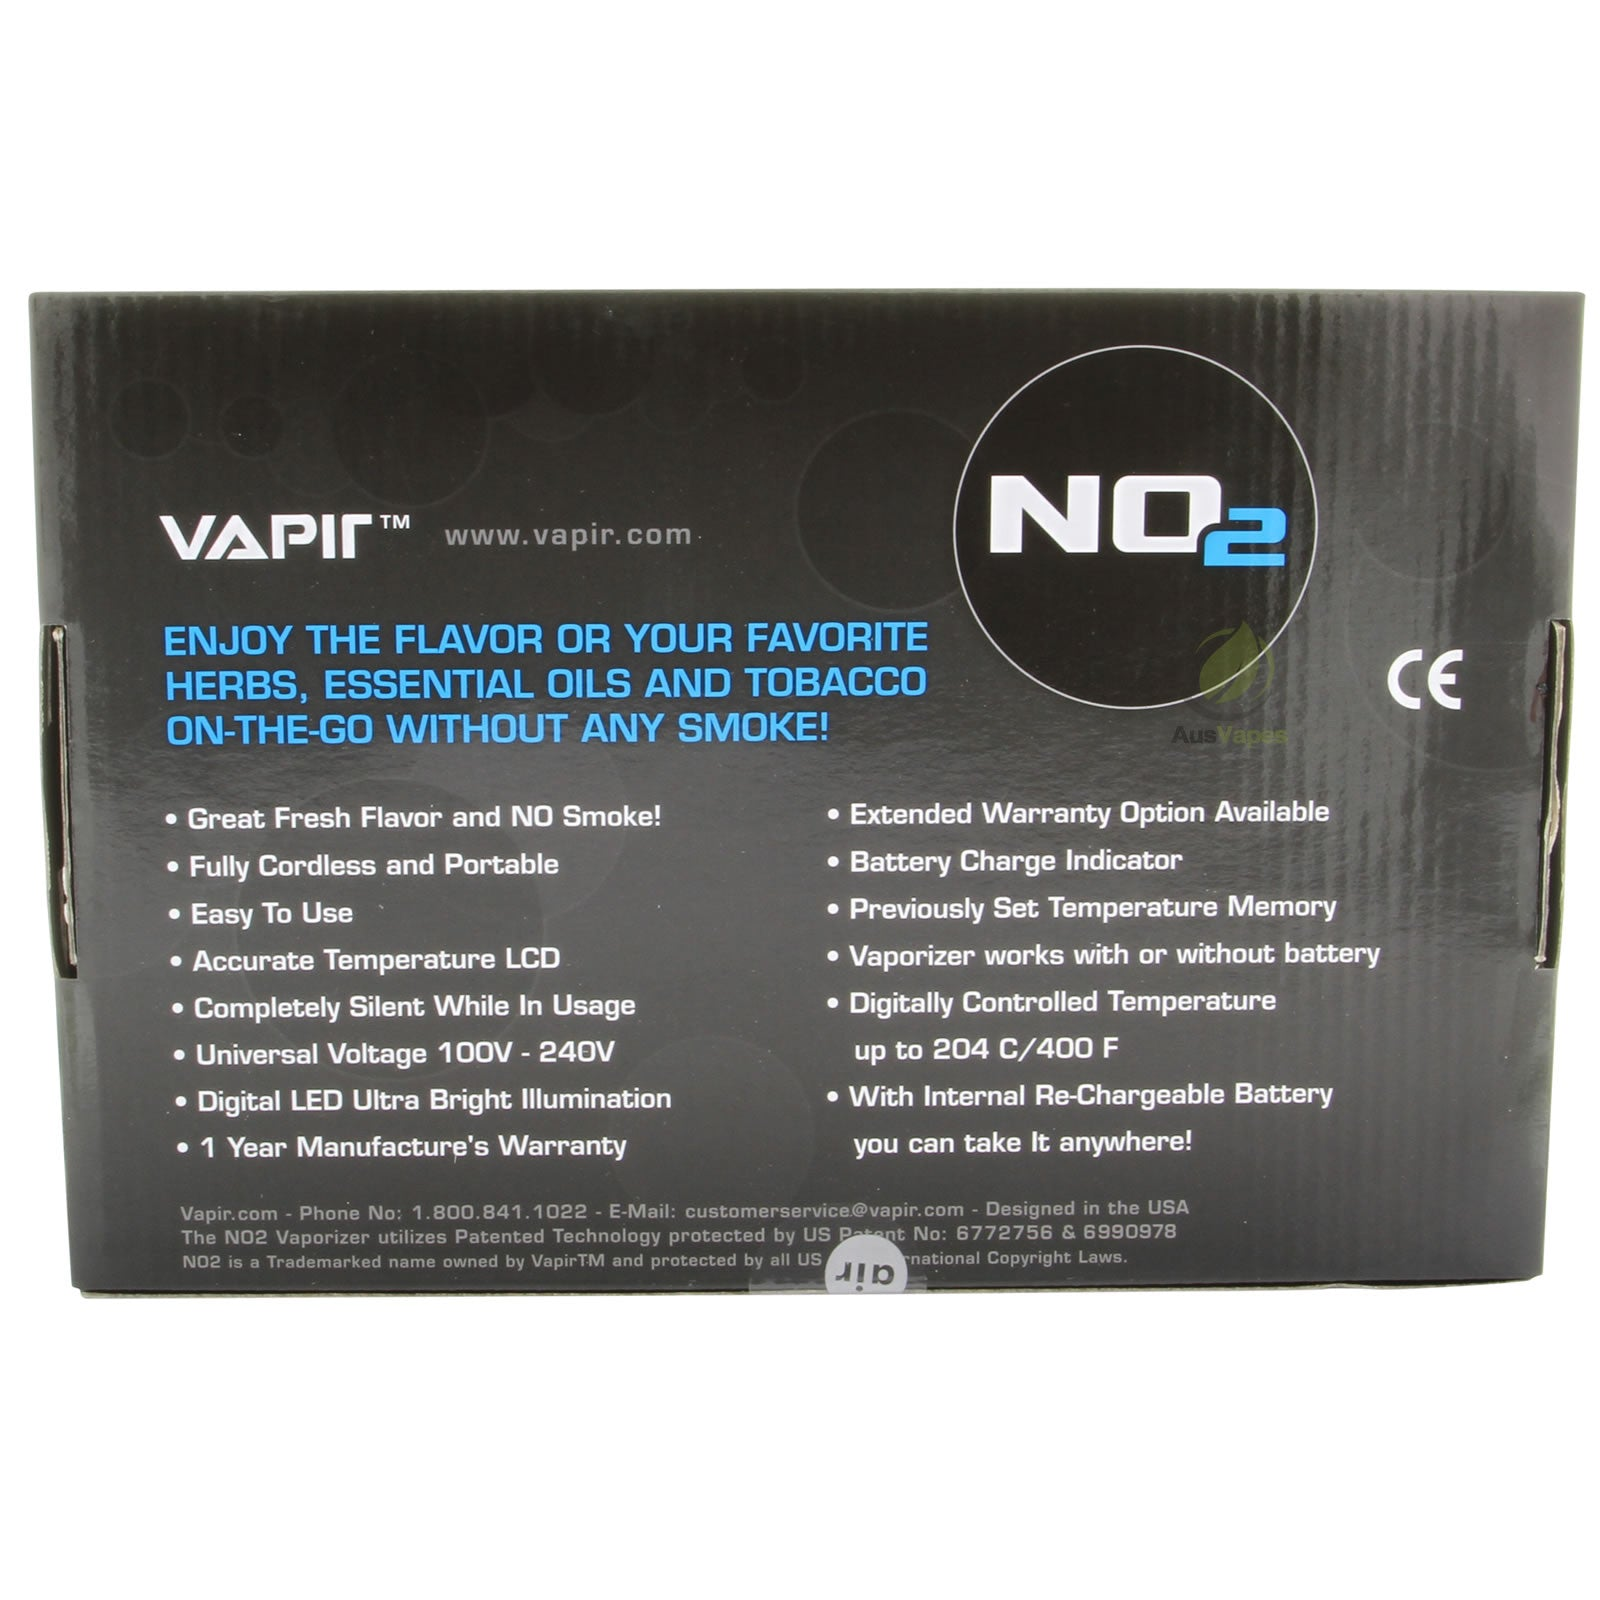 Vapir V2 Vaporizer instruction manual